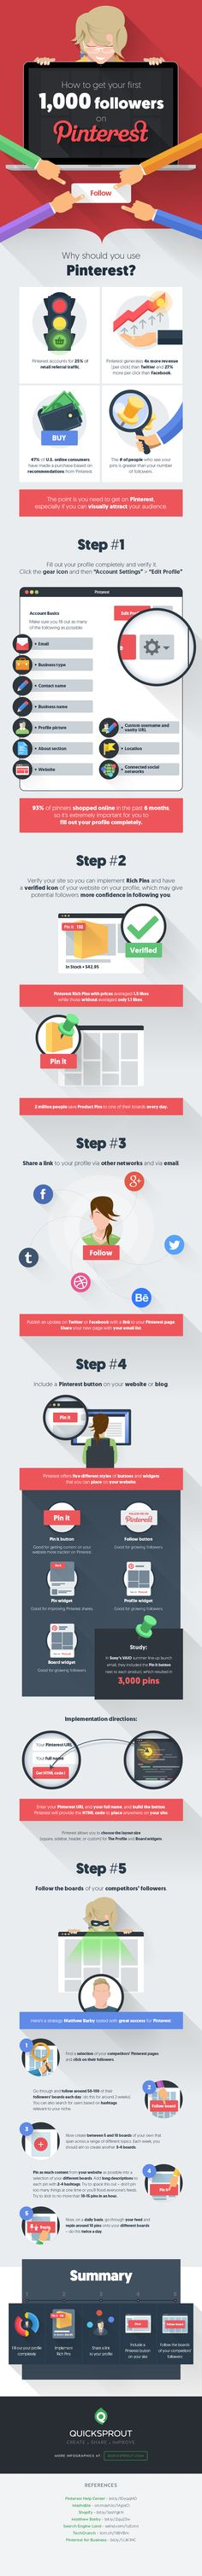 How to Get Your First 1000 Followers on Pinterest | via @borntobesocial